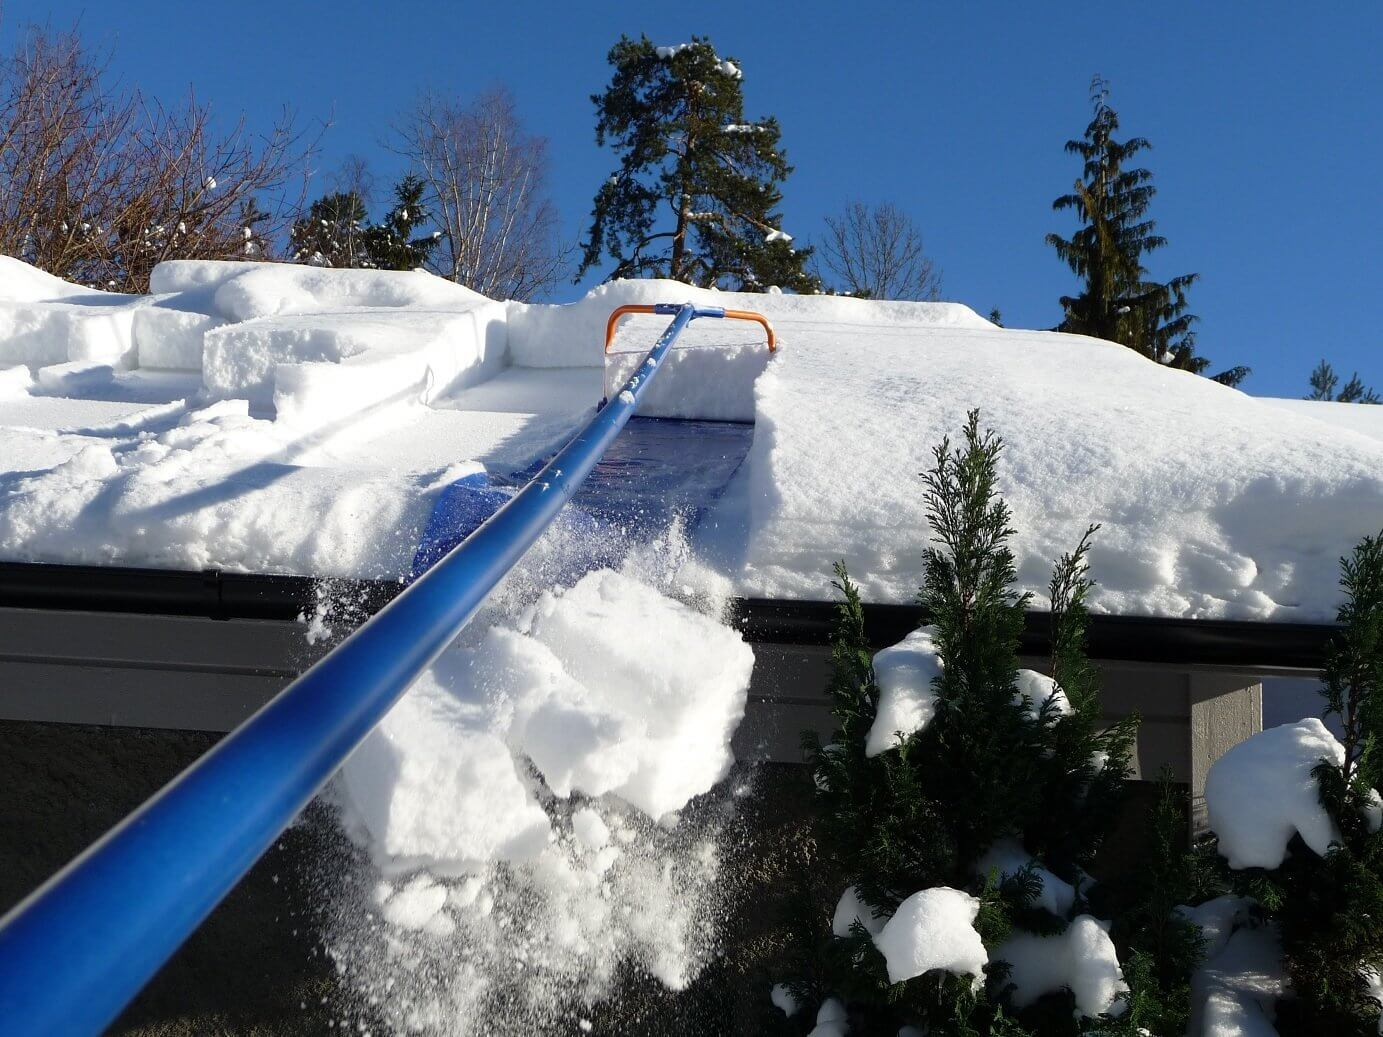 Buy a roof rake to combat the snow.